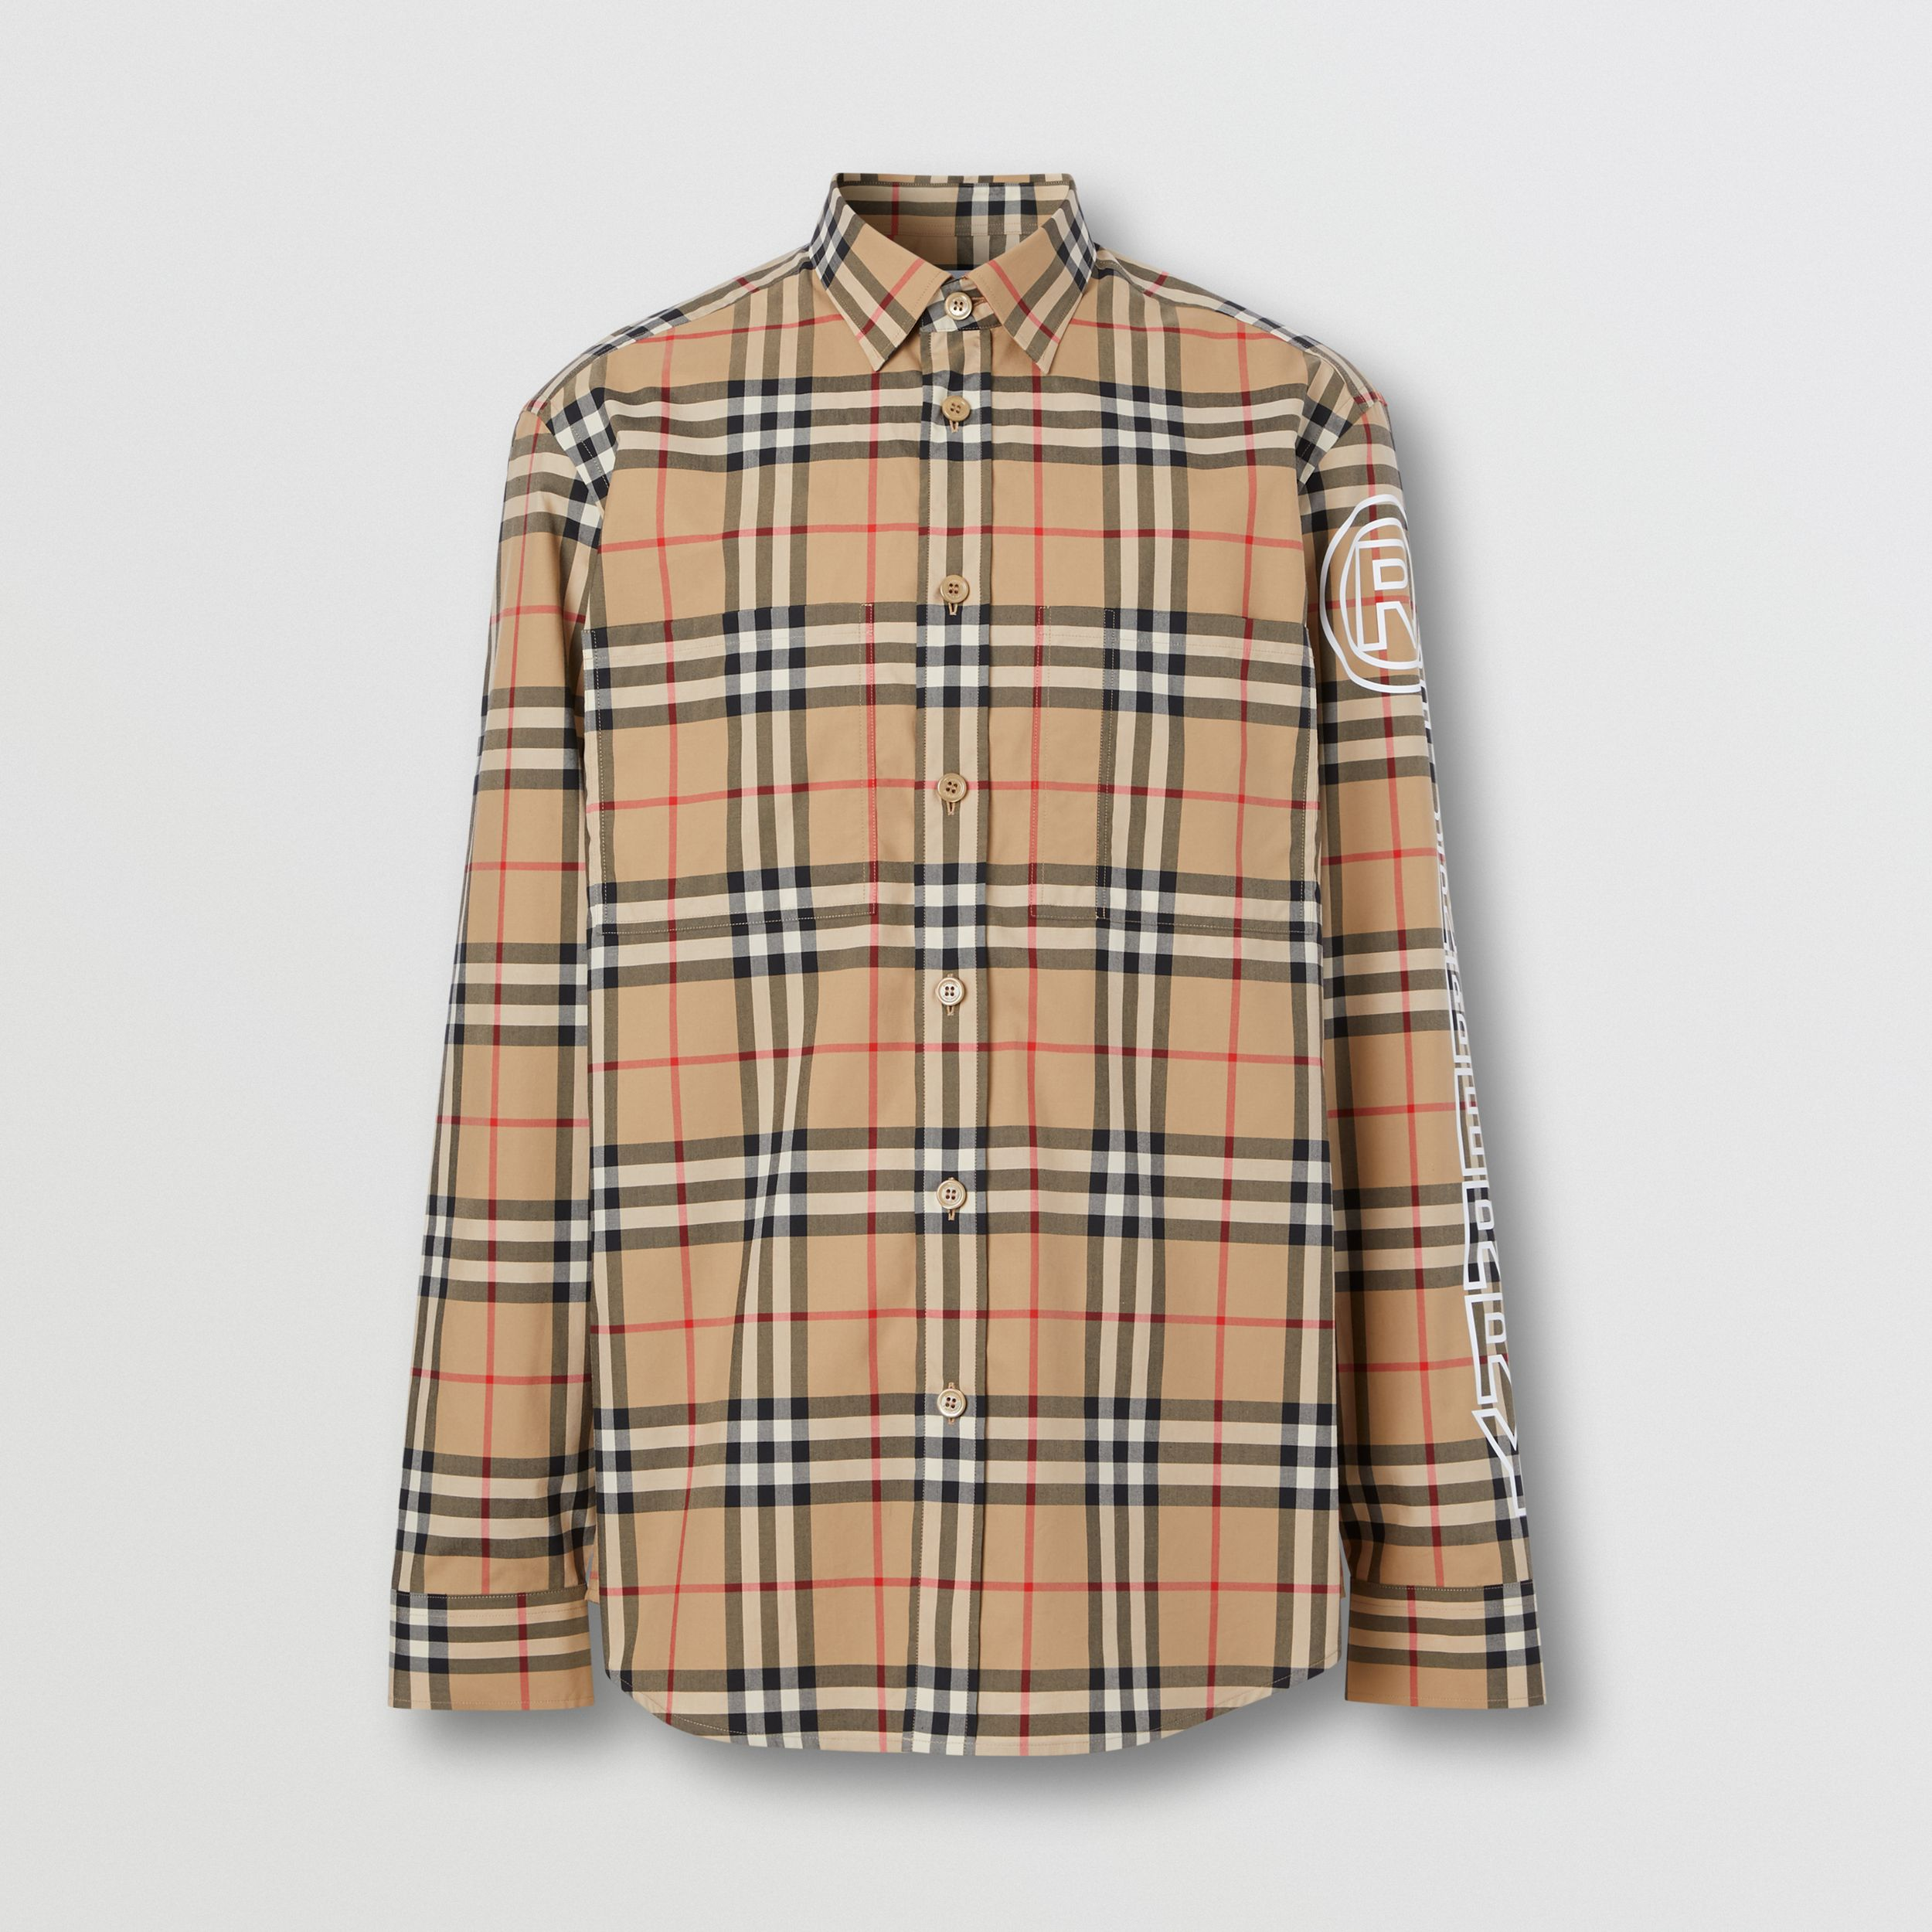 Logo Print Vintage Check Cotton Poplin Shirt in Archive Beige - Men | Burberry Australia - 4